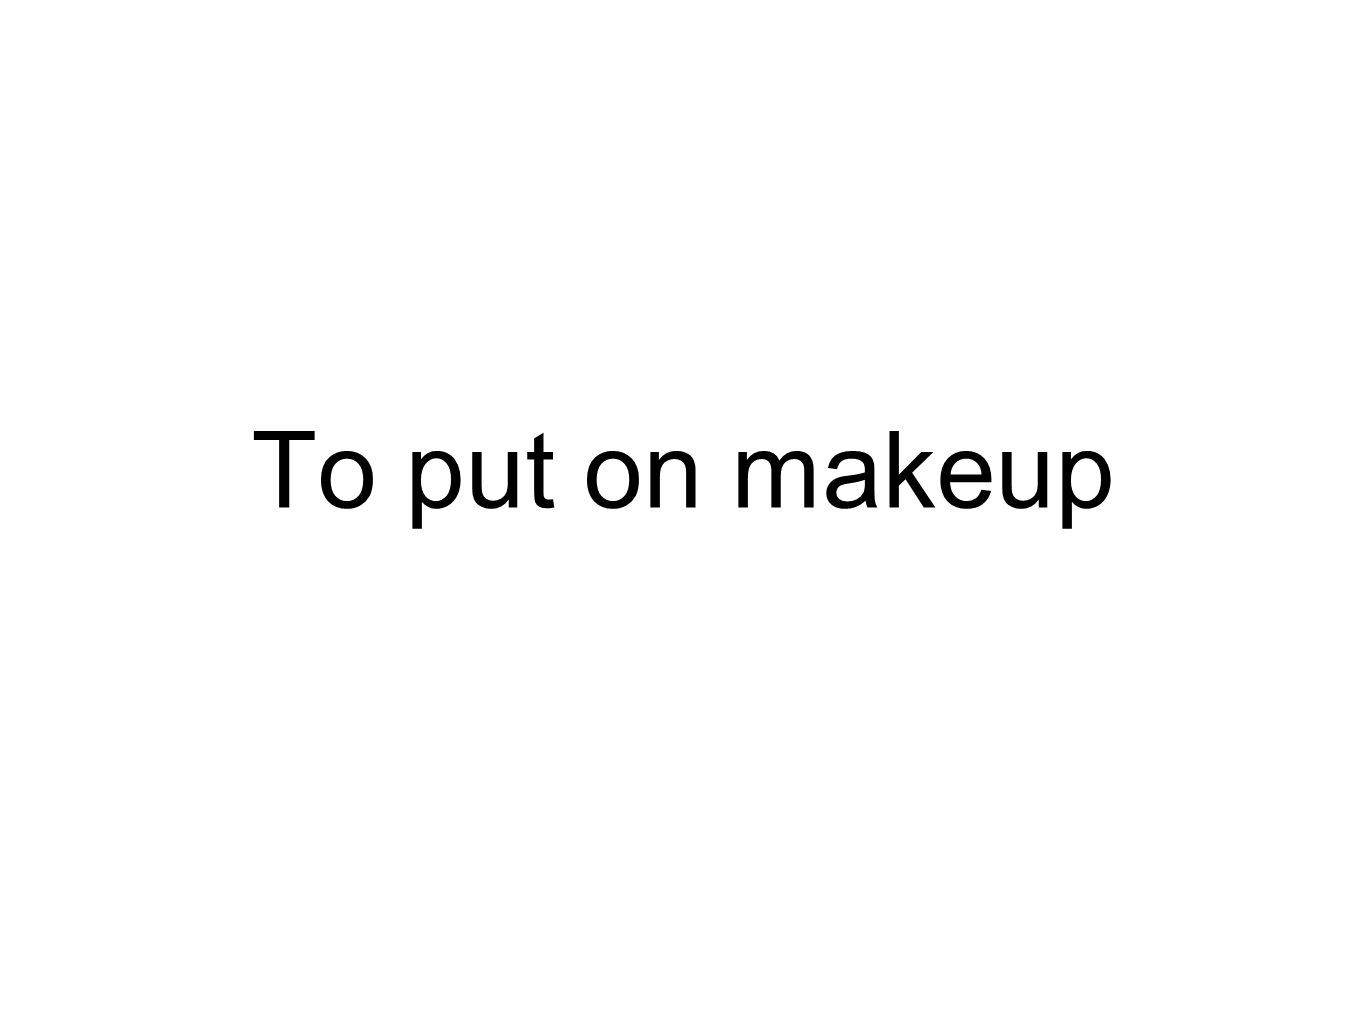 To put on makeup